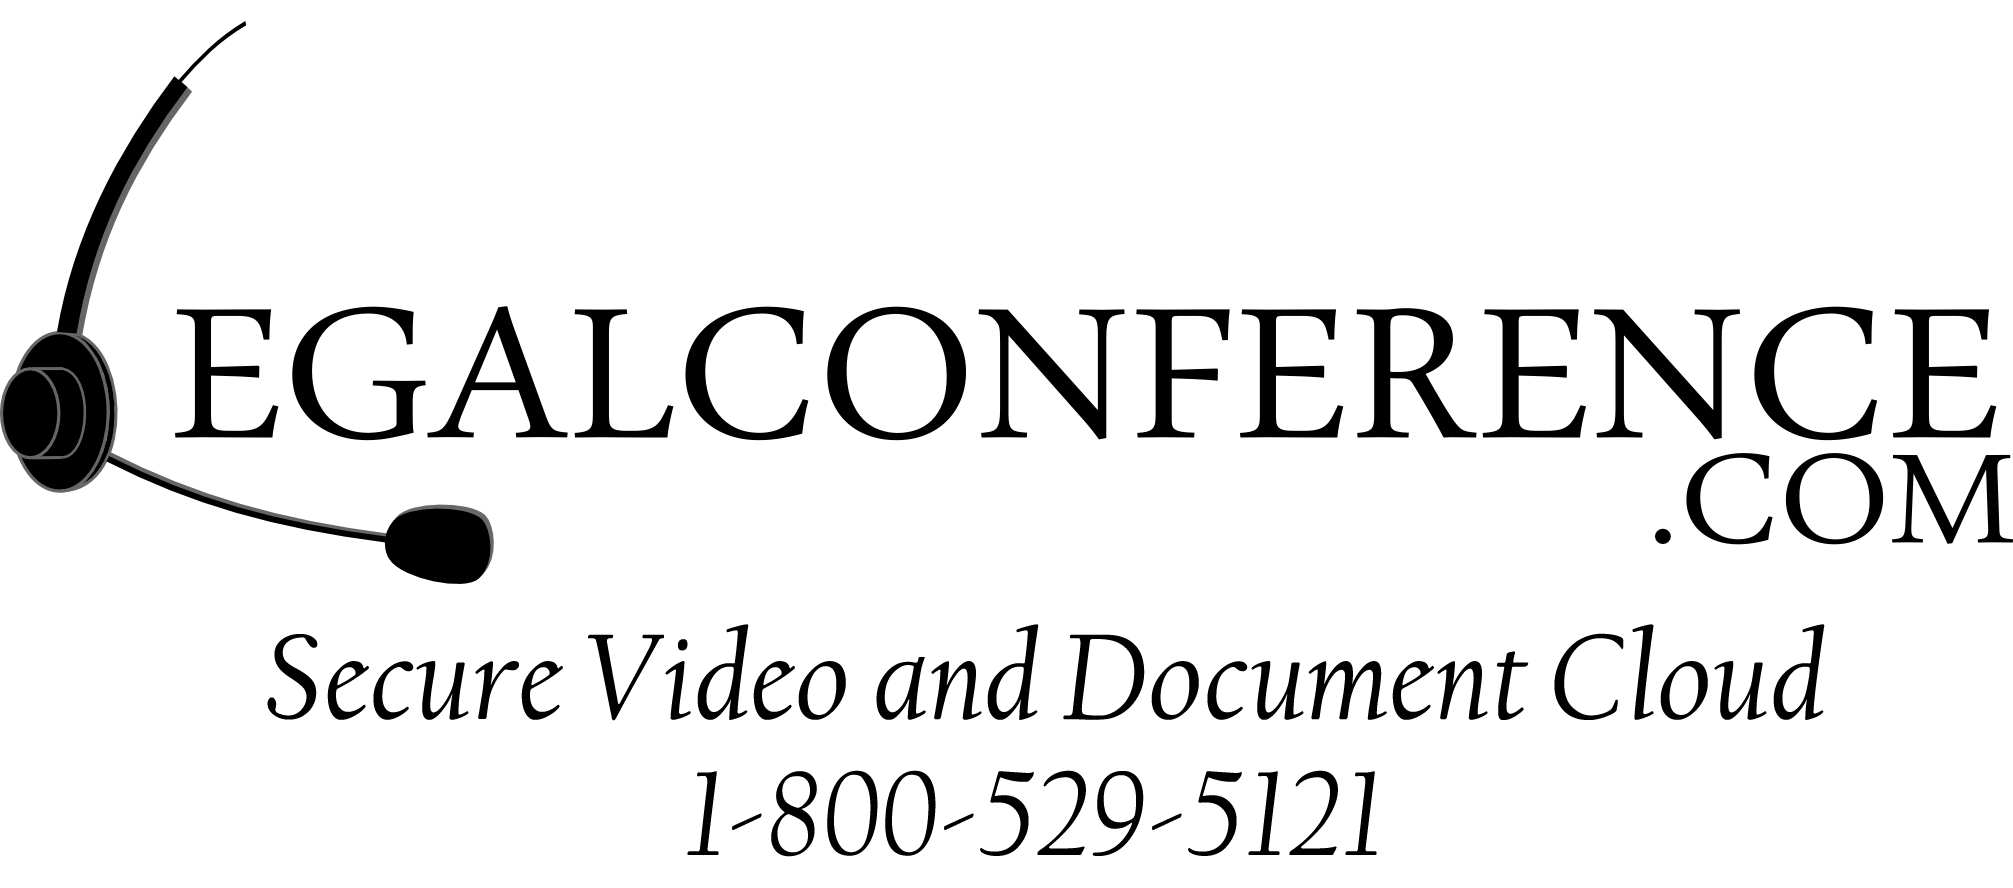 LegalConference.com